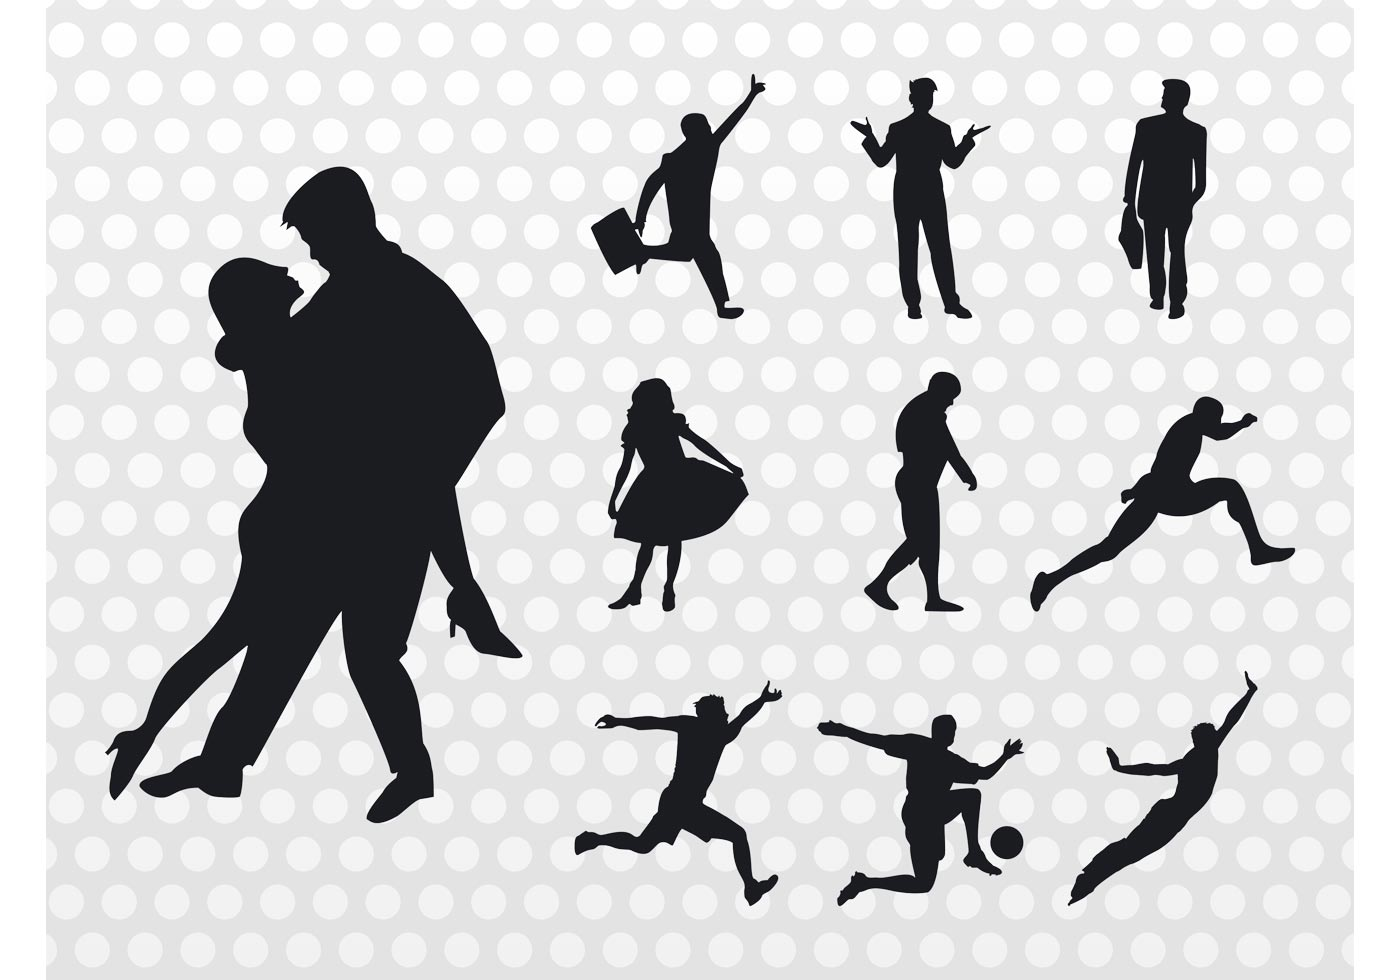 Traveling People Silhouettes Vector Art Graphics: People Silhouettes Vector